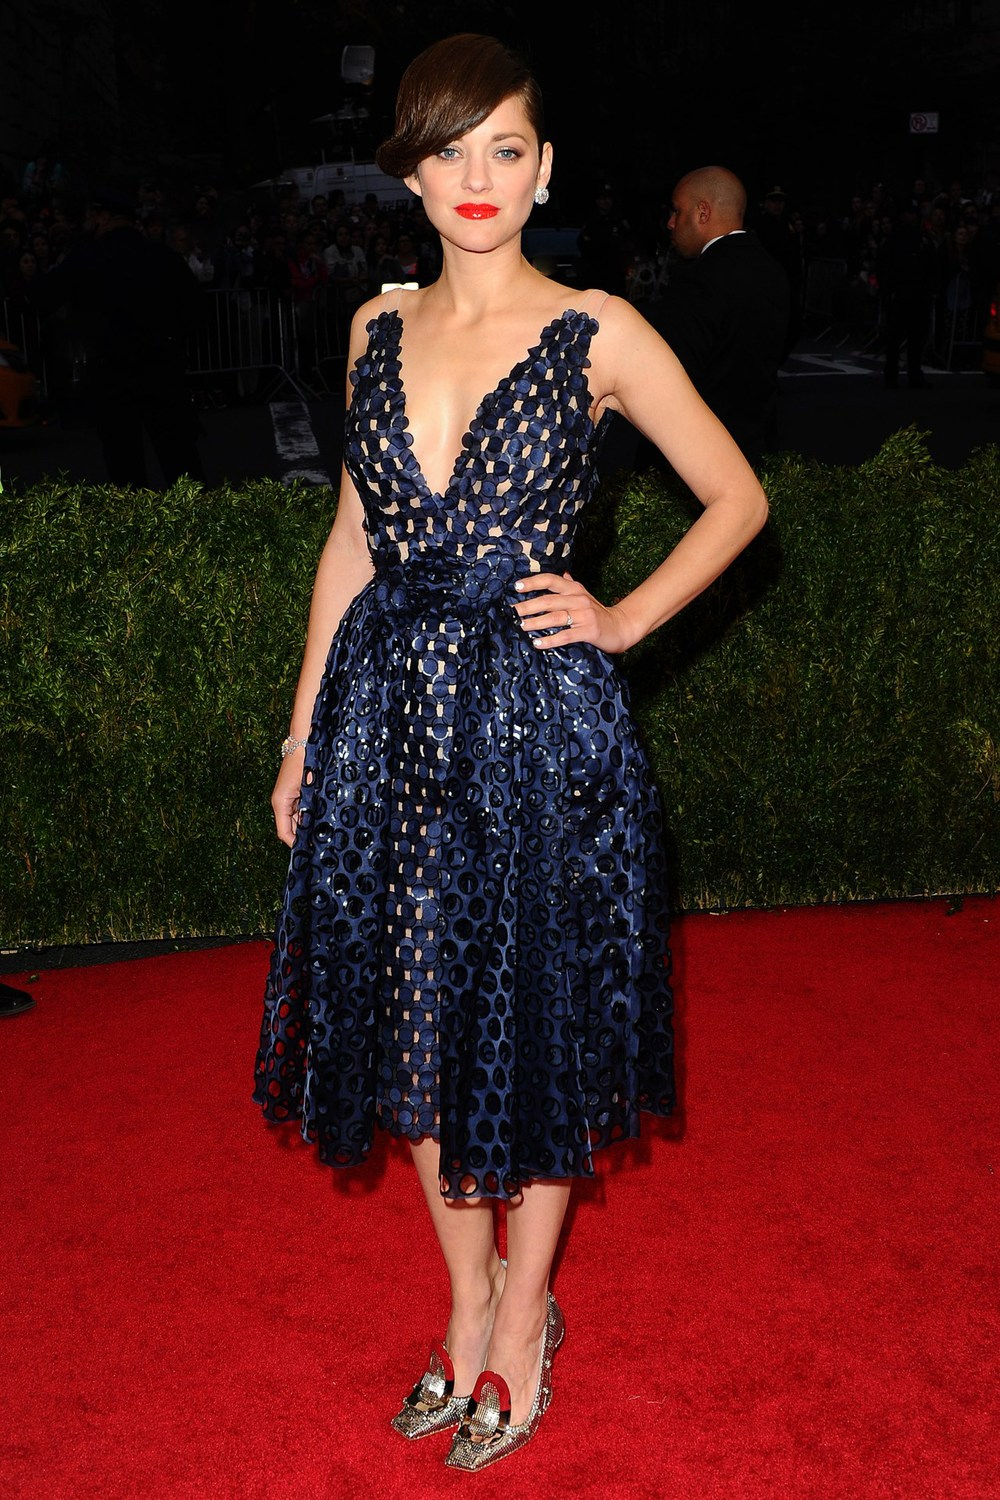 Marion Cotillard in a Dior Couture.